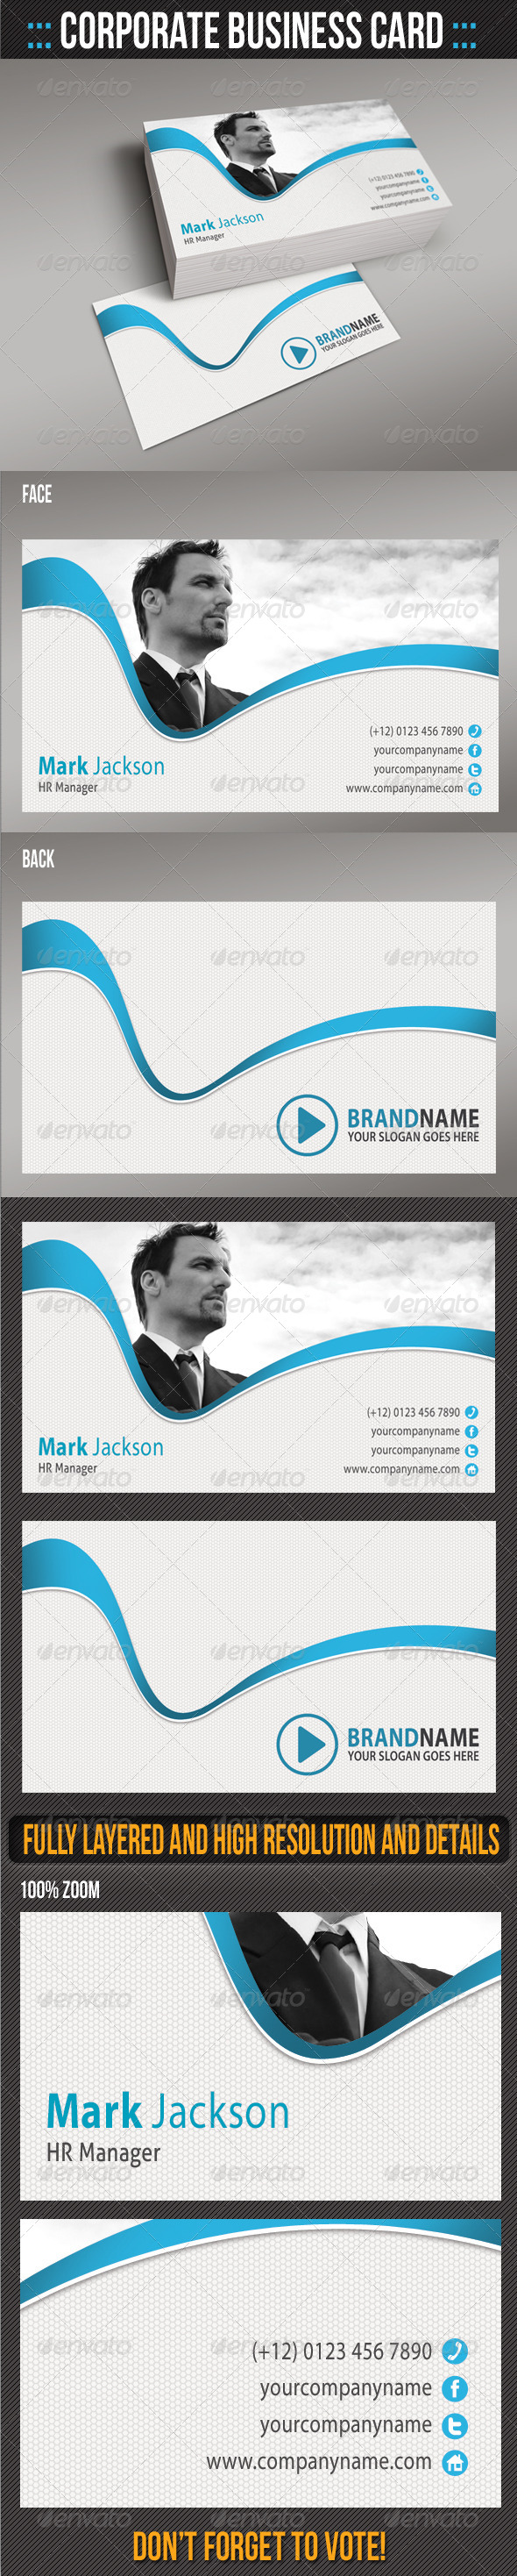 GraphicRiver Corporate Business Card 07 5577371